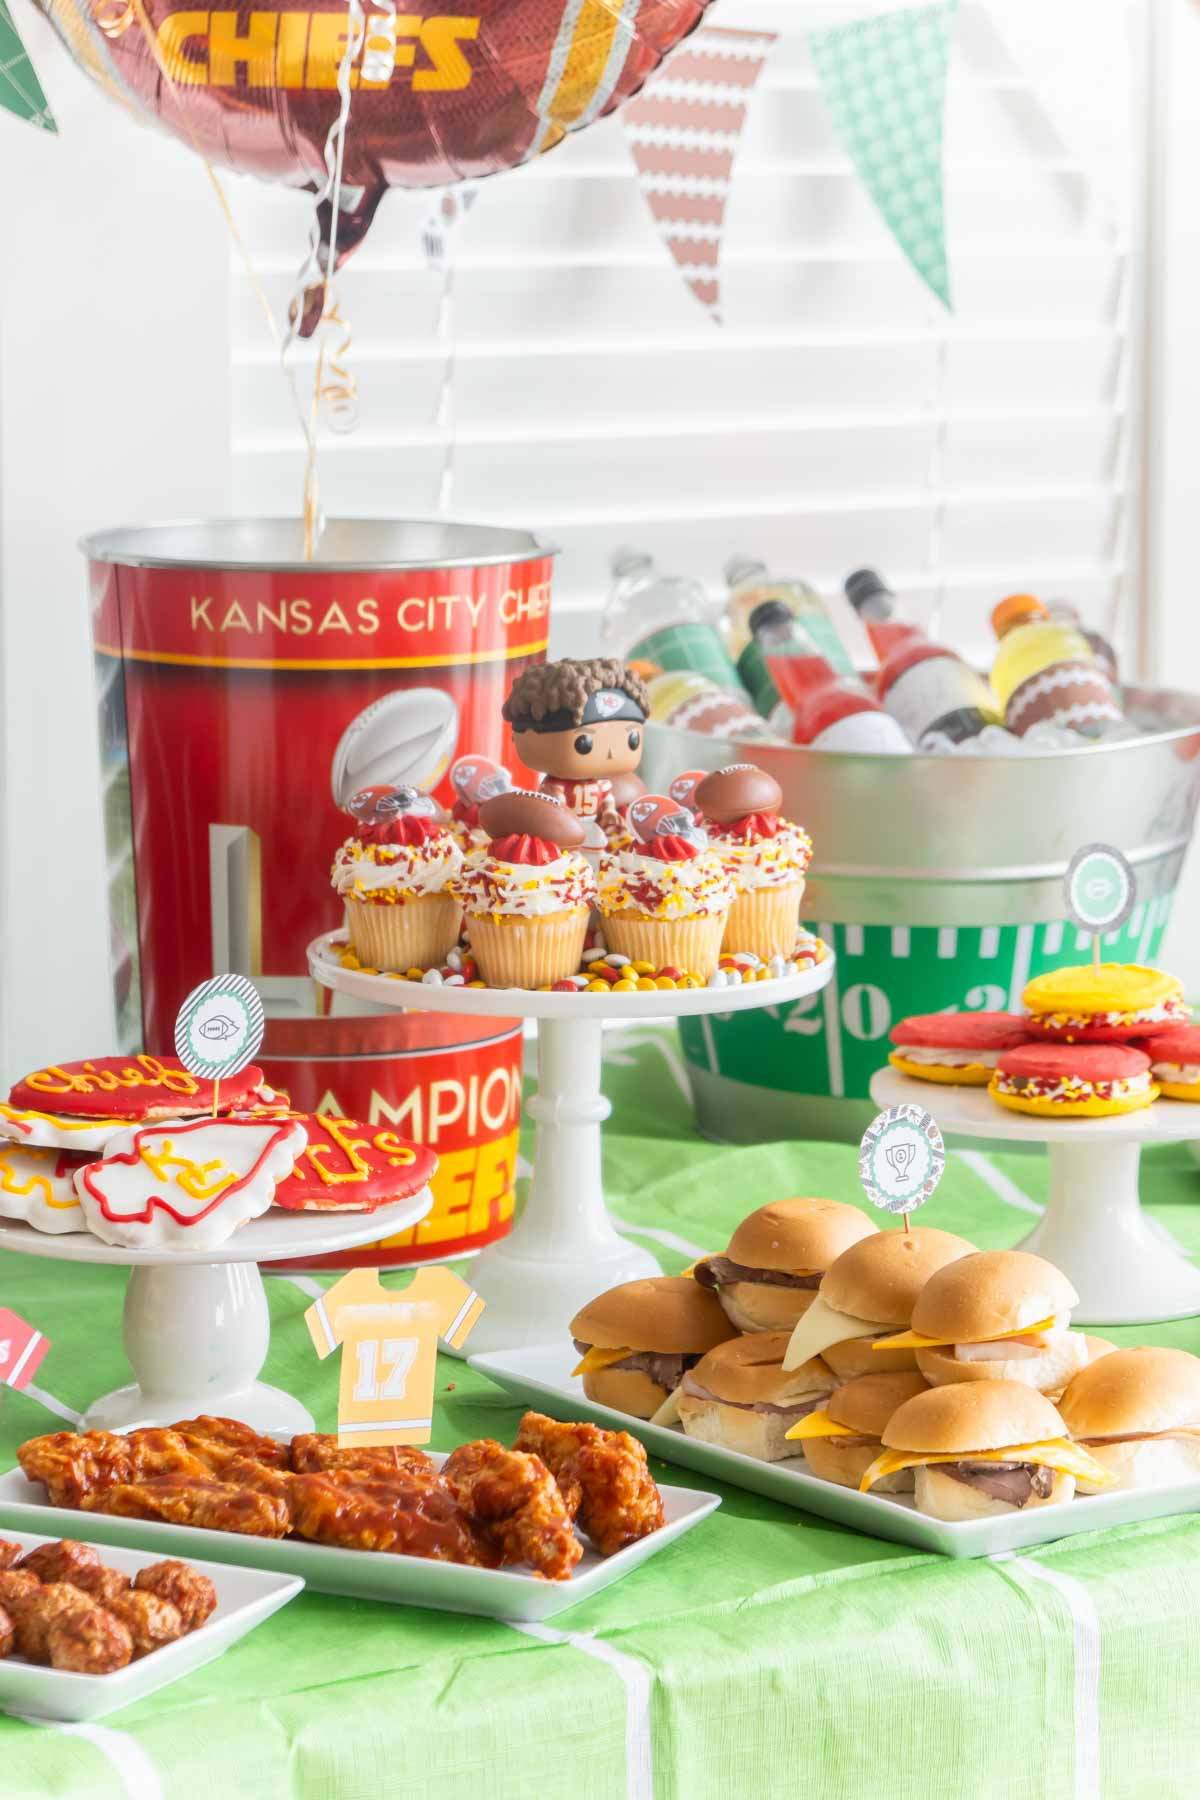 Super Bowl table with Chiefs decorations and food